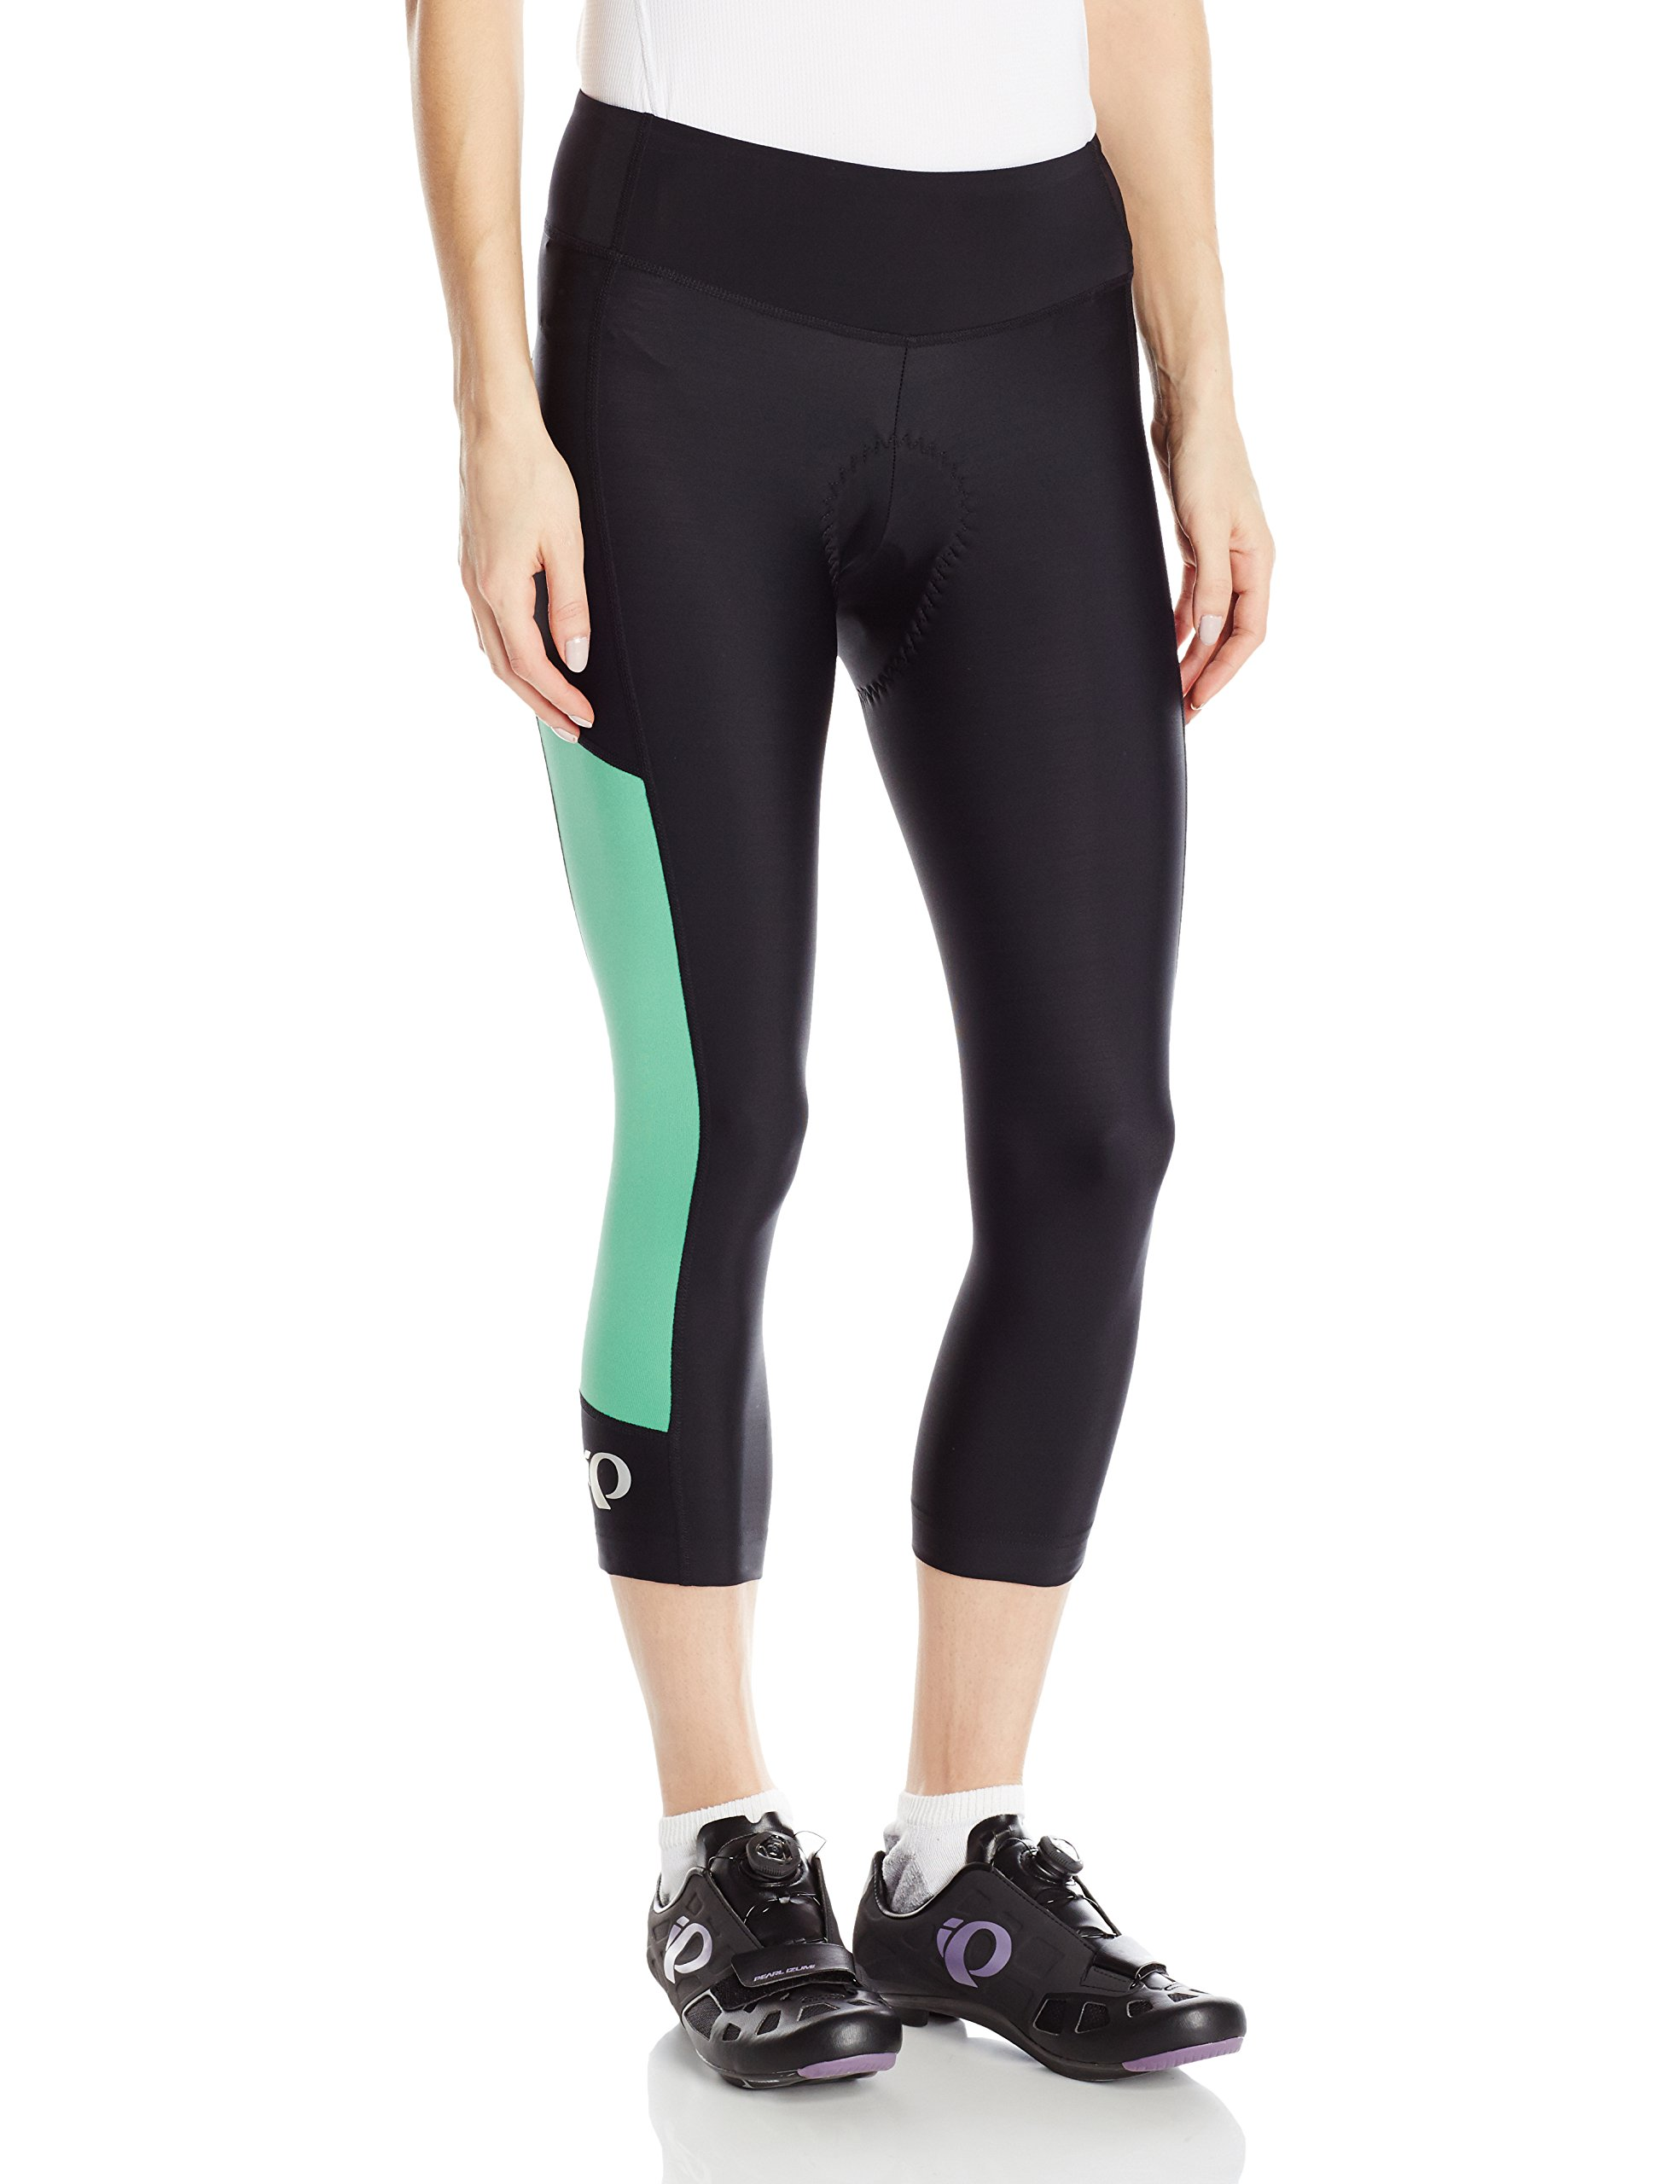 Pearl iZUMi Women's Escape Sugar CYC 3 Quarter Tights, Black/Green Spruce, X-Small